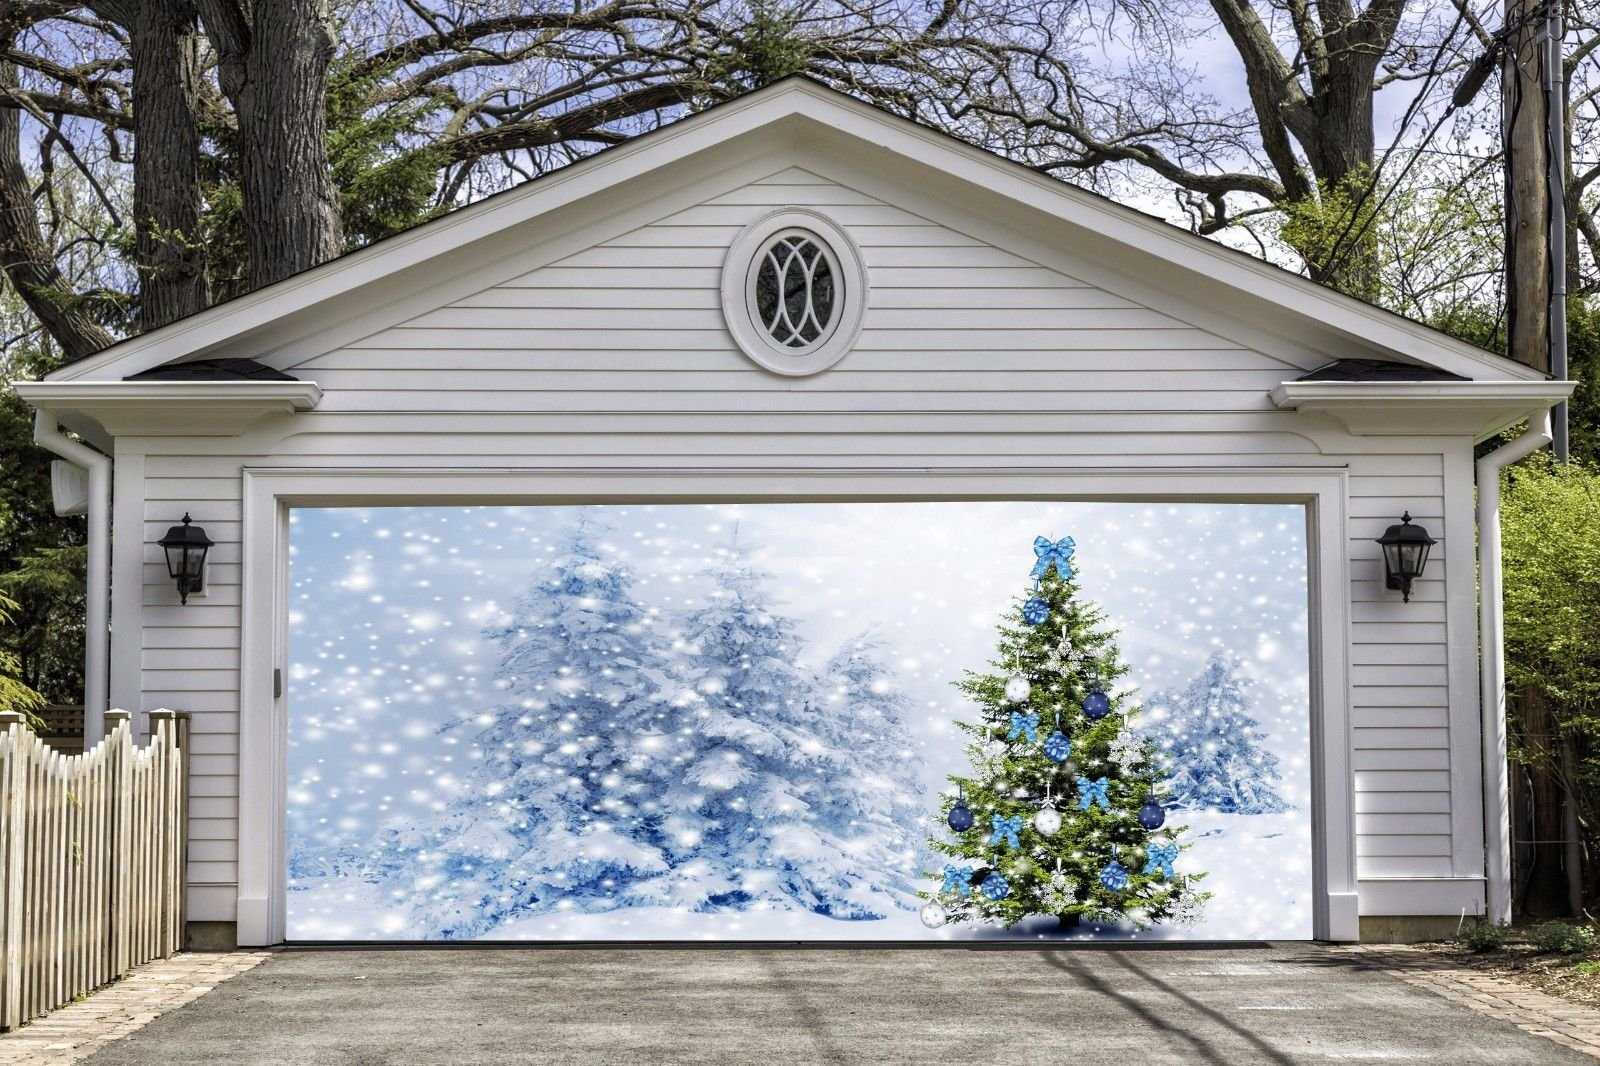 3D Christmas Tree Garage Door Covers Banners Outdoor Full Color House Billboard for 2 Car Garage Door Holiday Merry Christmas Decorations Art Murals size 82x188 inches DAV51